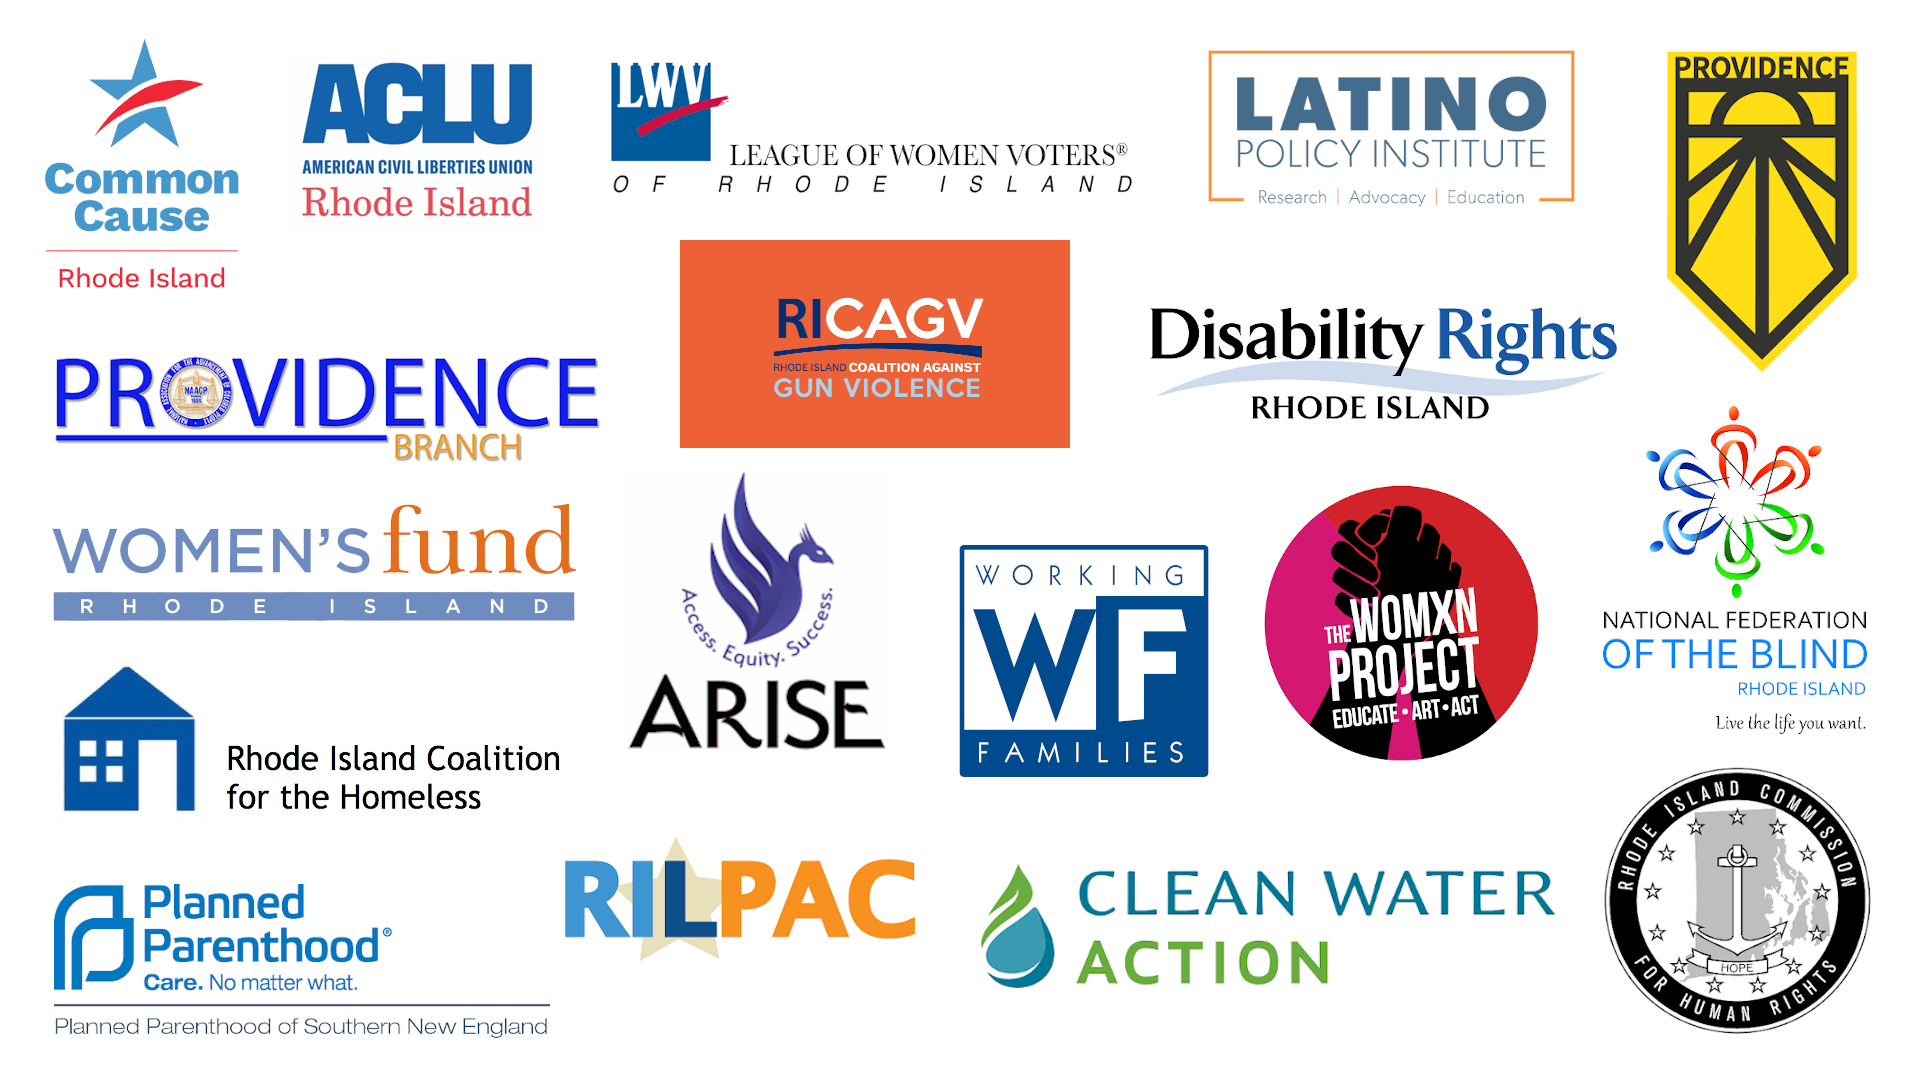 This project is sponsored by a coalition of community organizations working to provide information and resources to Rhode Island voters.